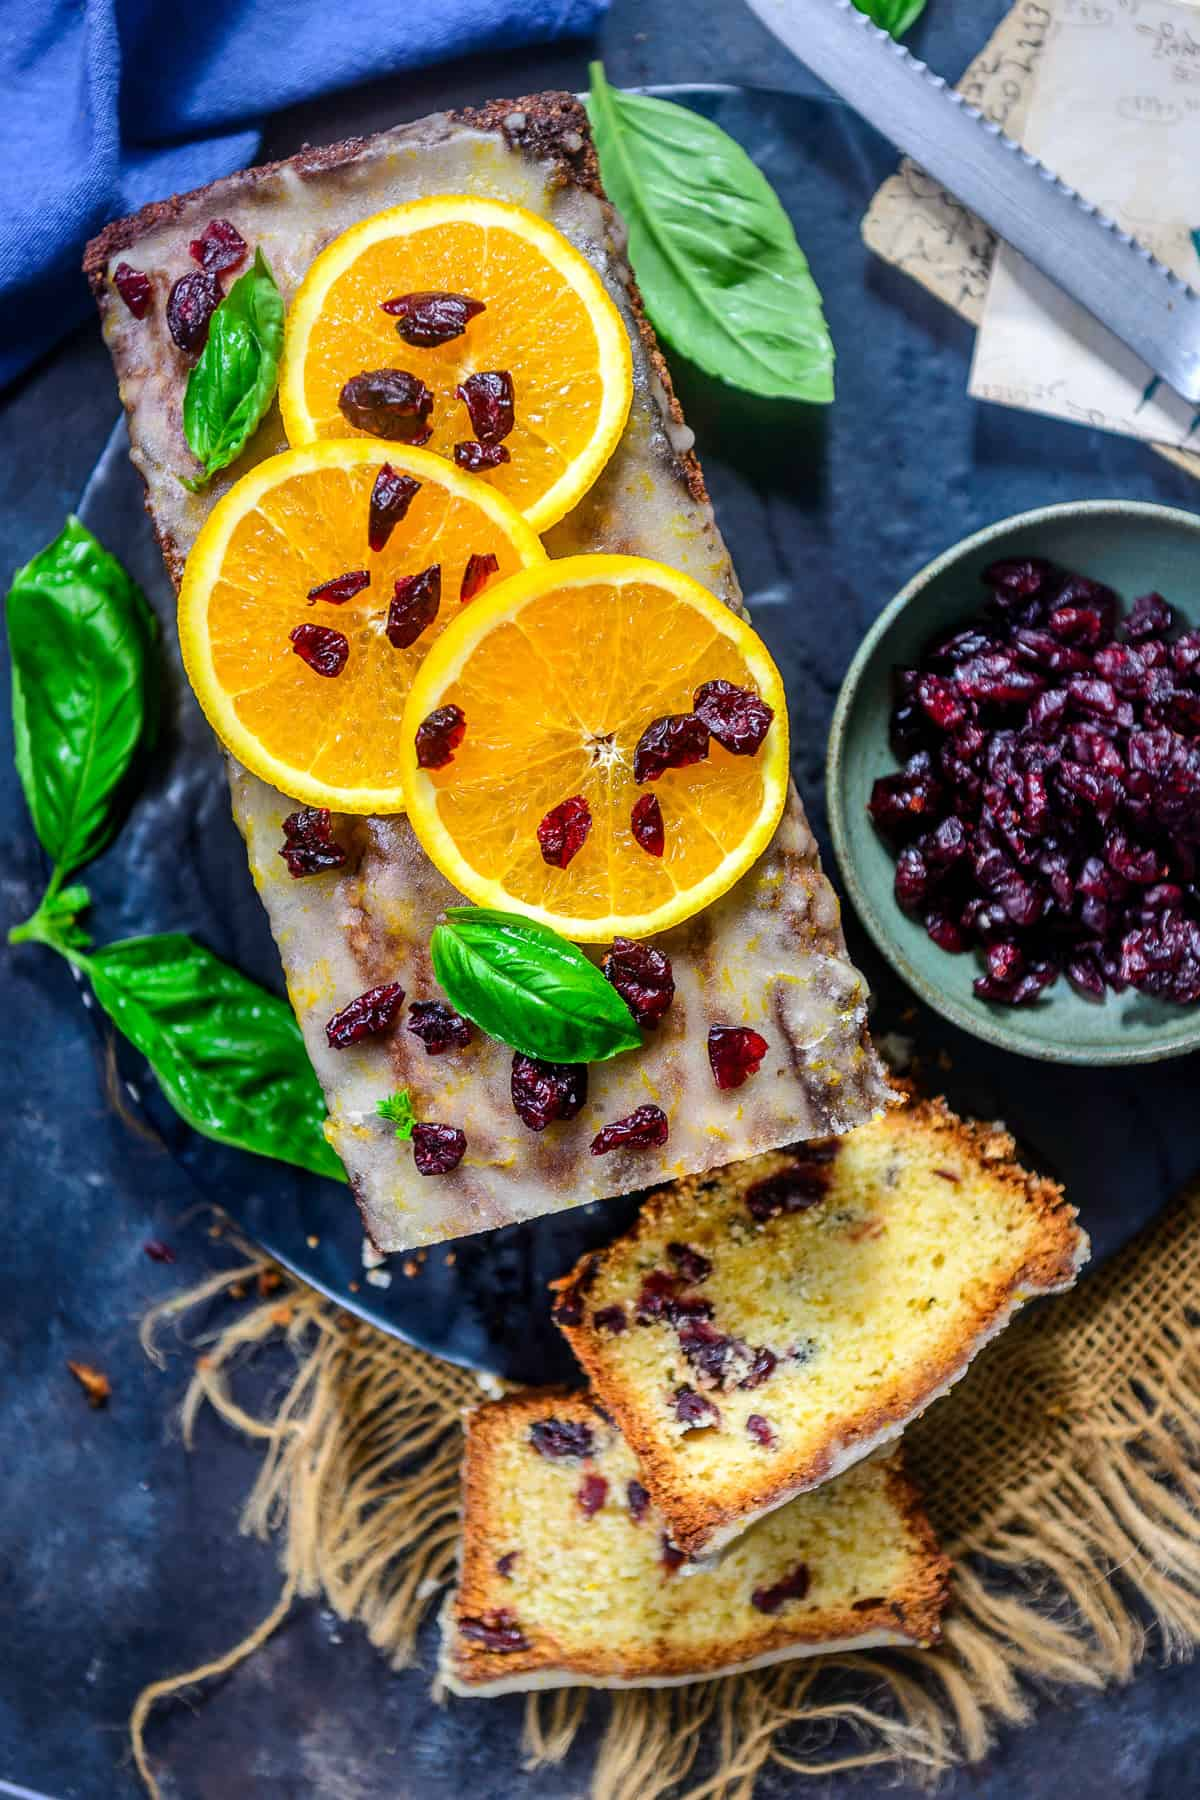 Cranberry Orange Bread served on a plate.